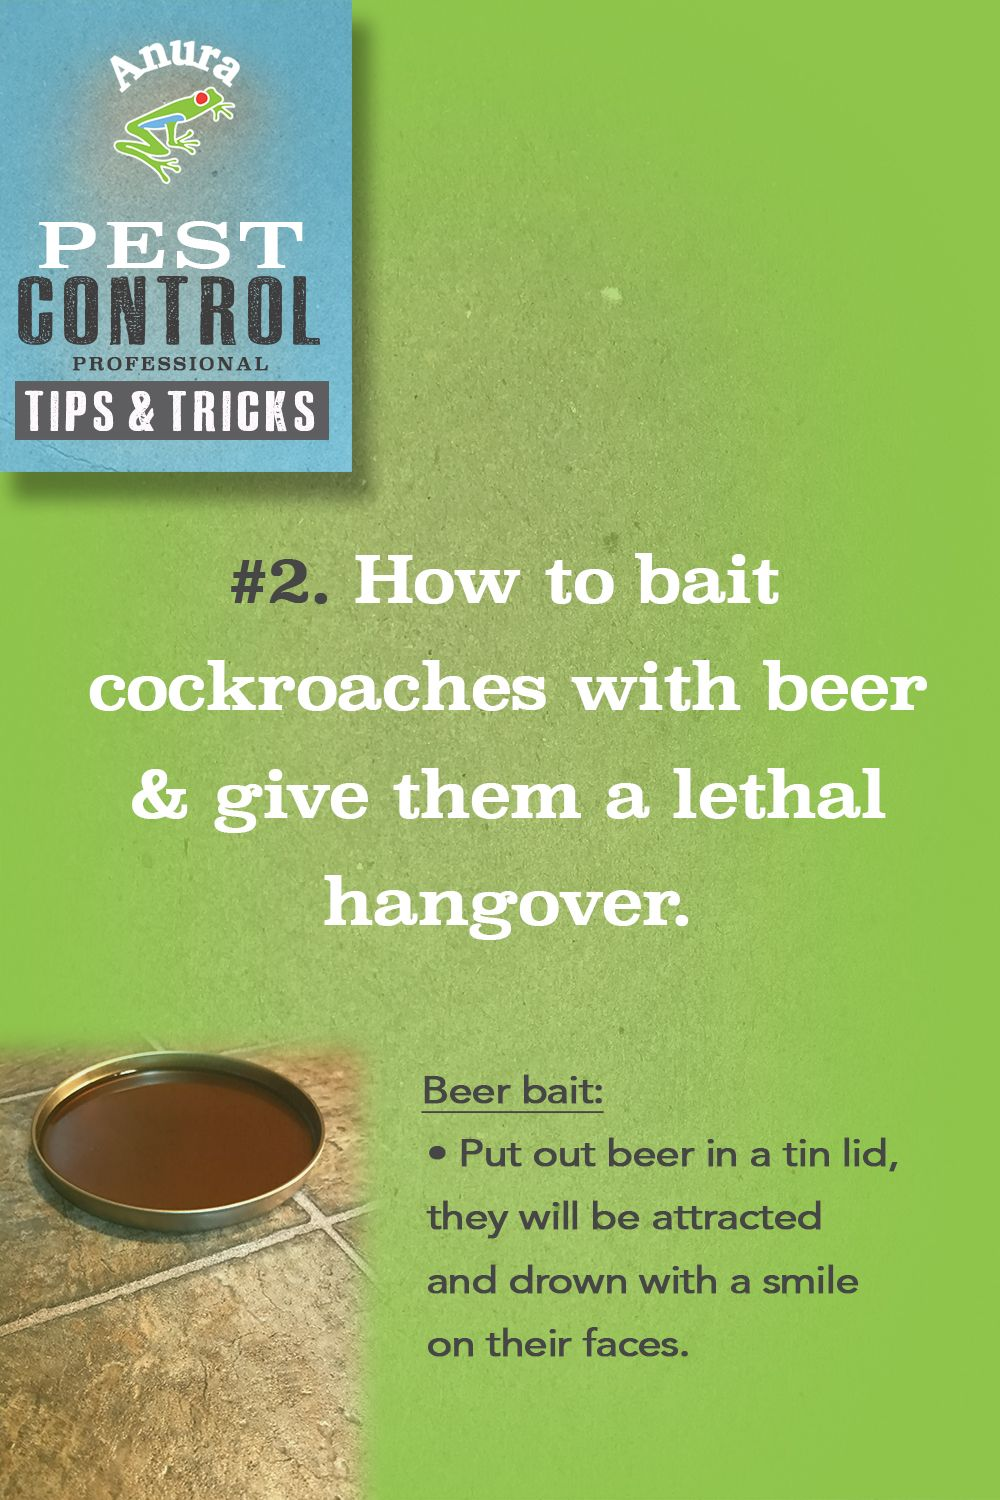 How to bait cockroaches with beer and give them a lethal